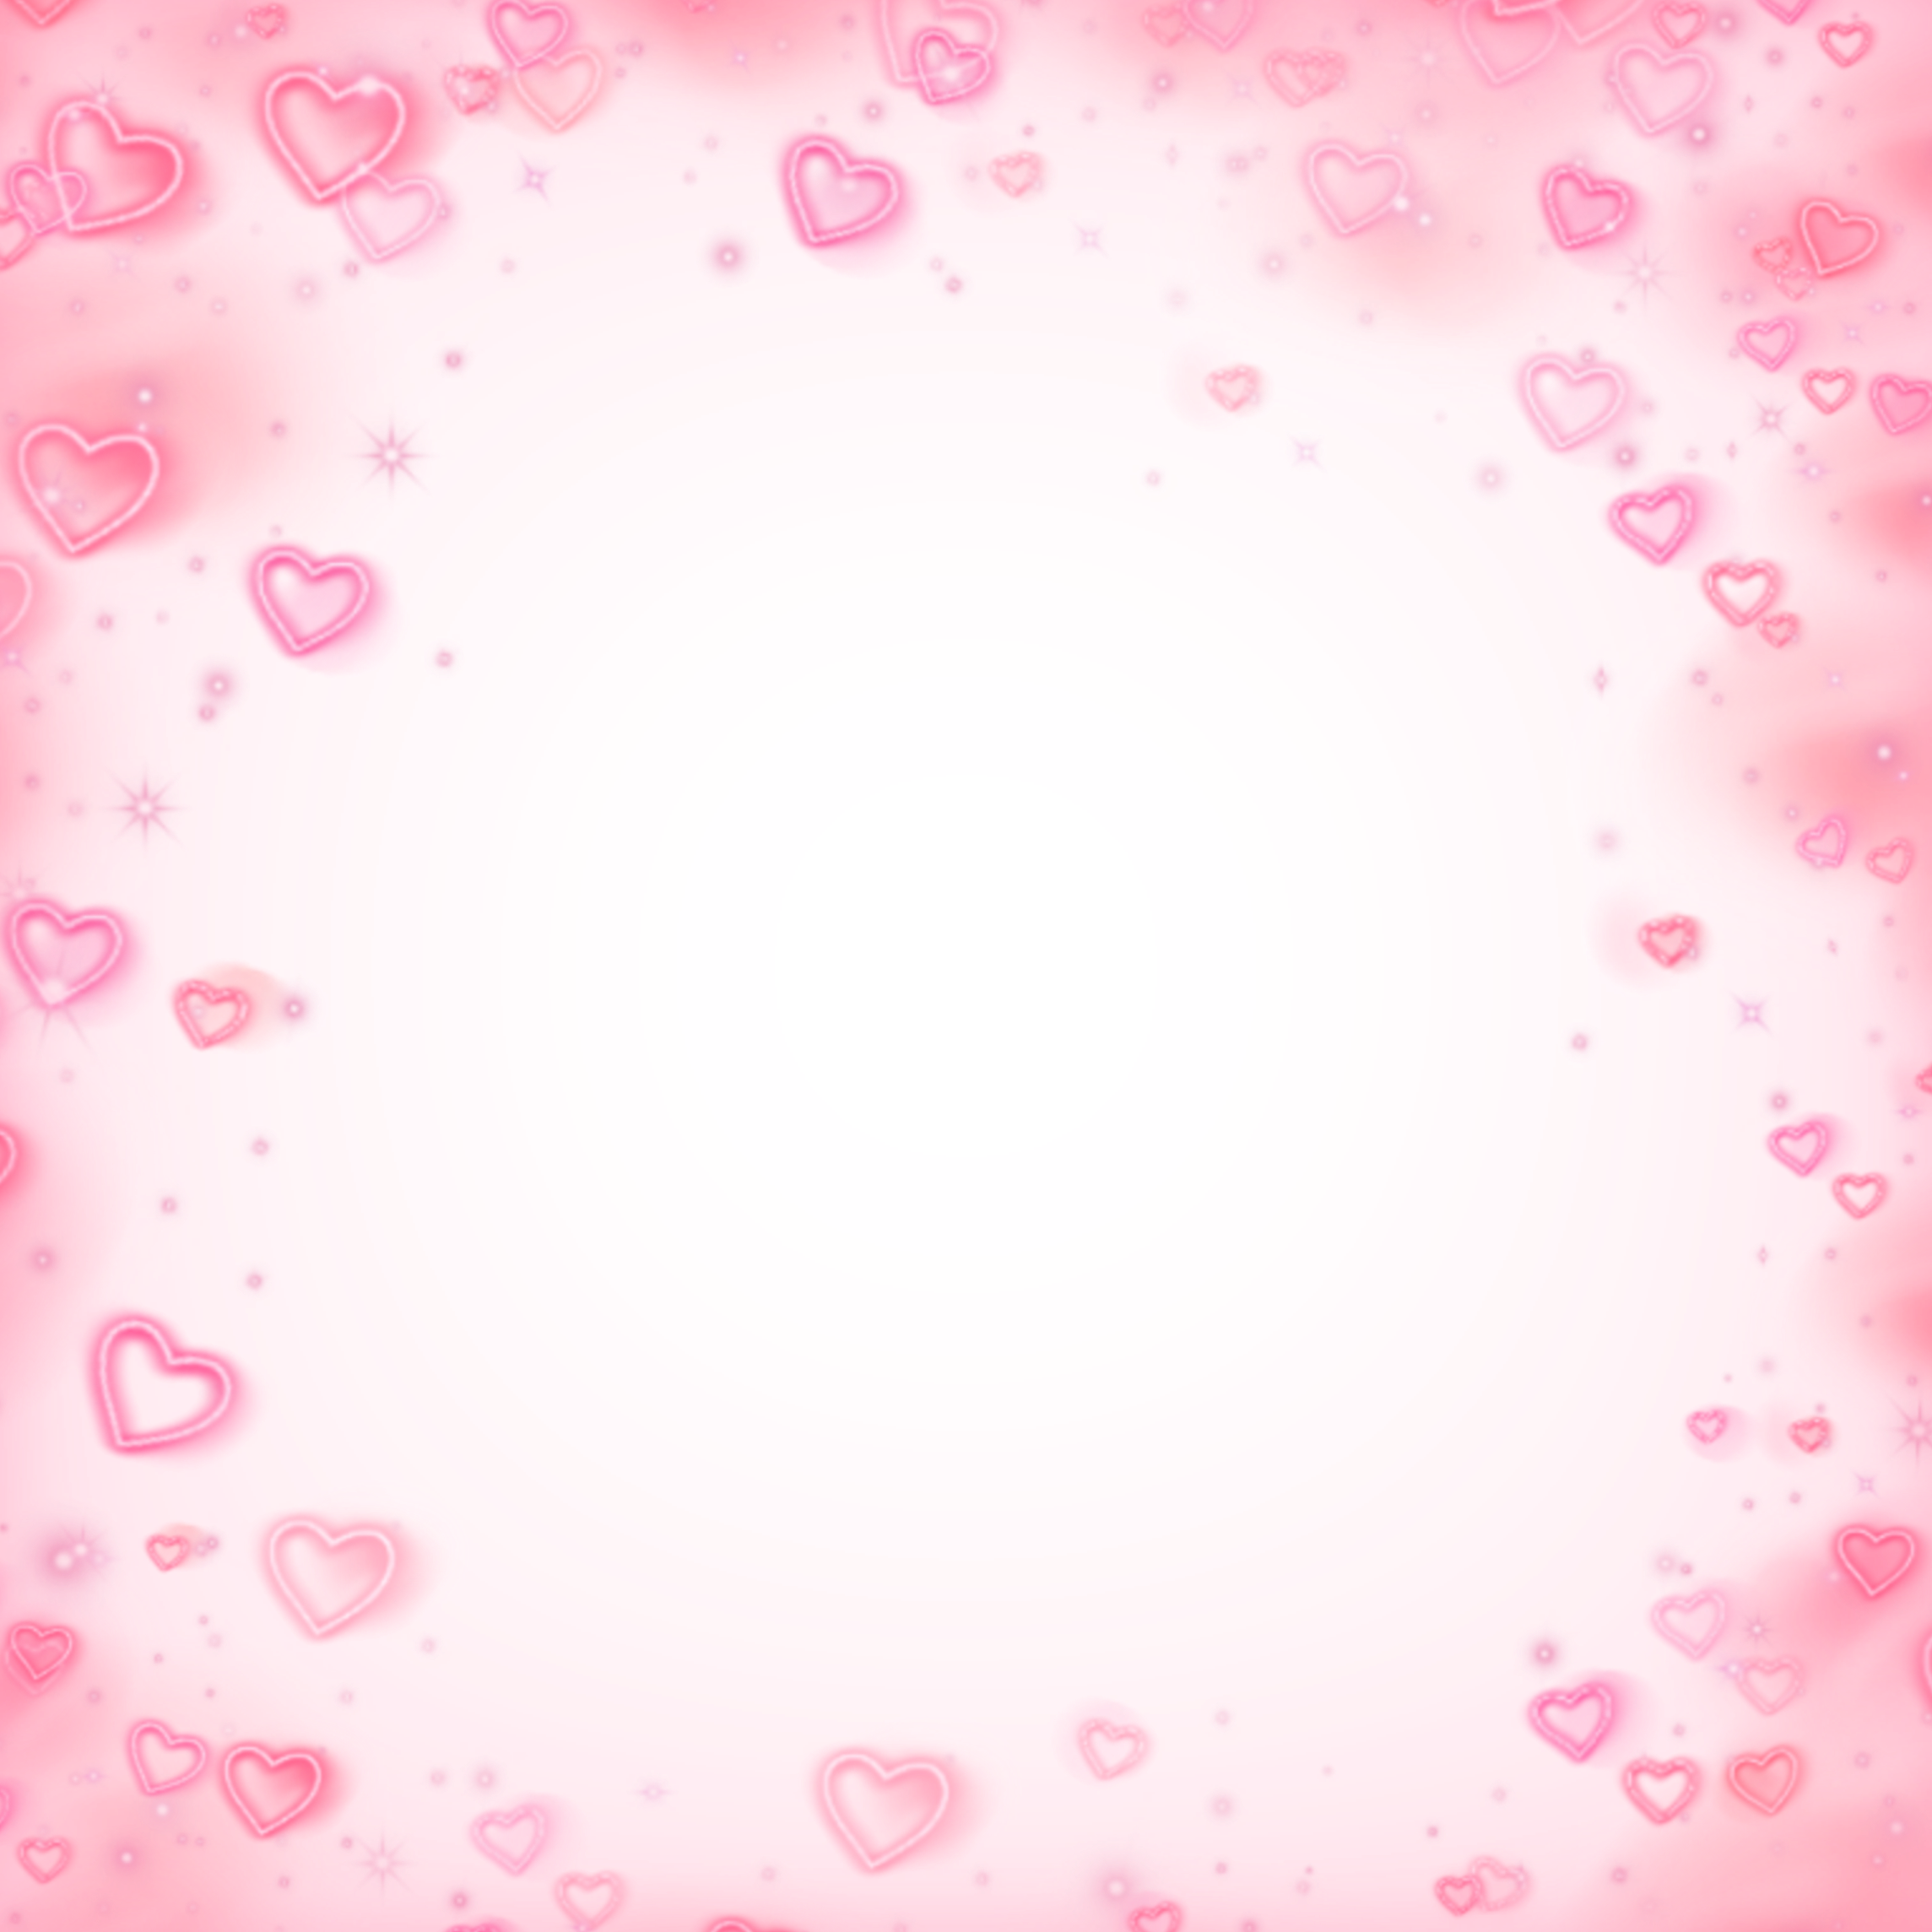 Freetoedit Heart Border Square Pink Cute Kpop Remixed From Taebff In 2020 Overlays Transparent Baby Pink Aesthetic Overlays Picsart